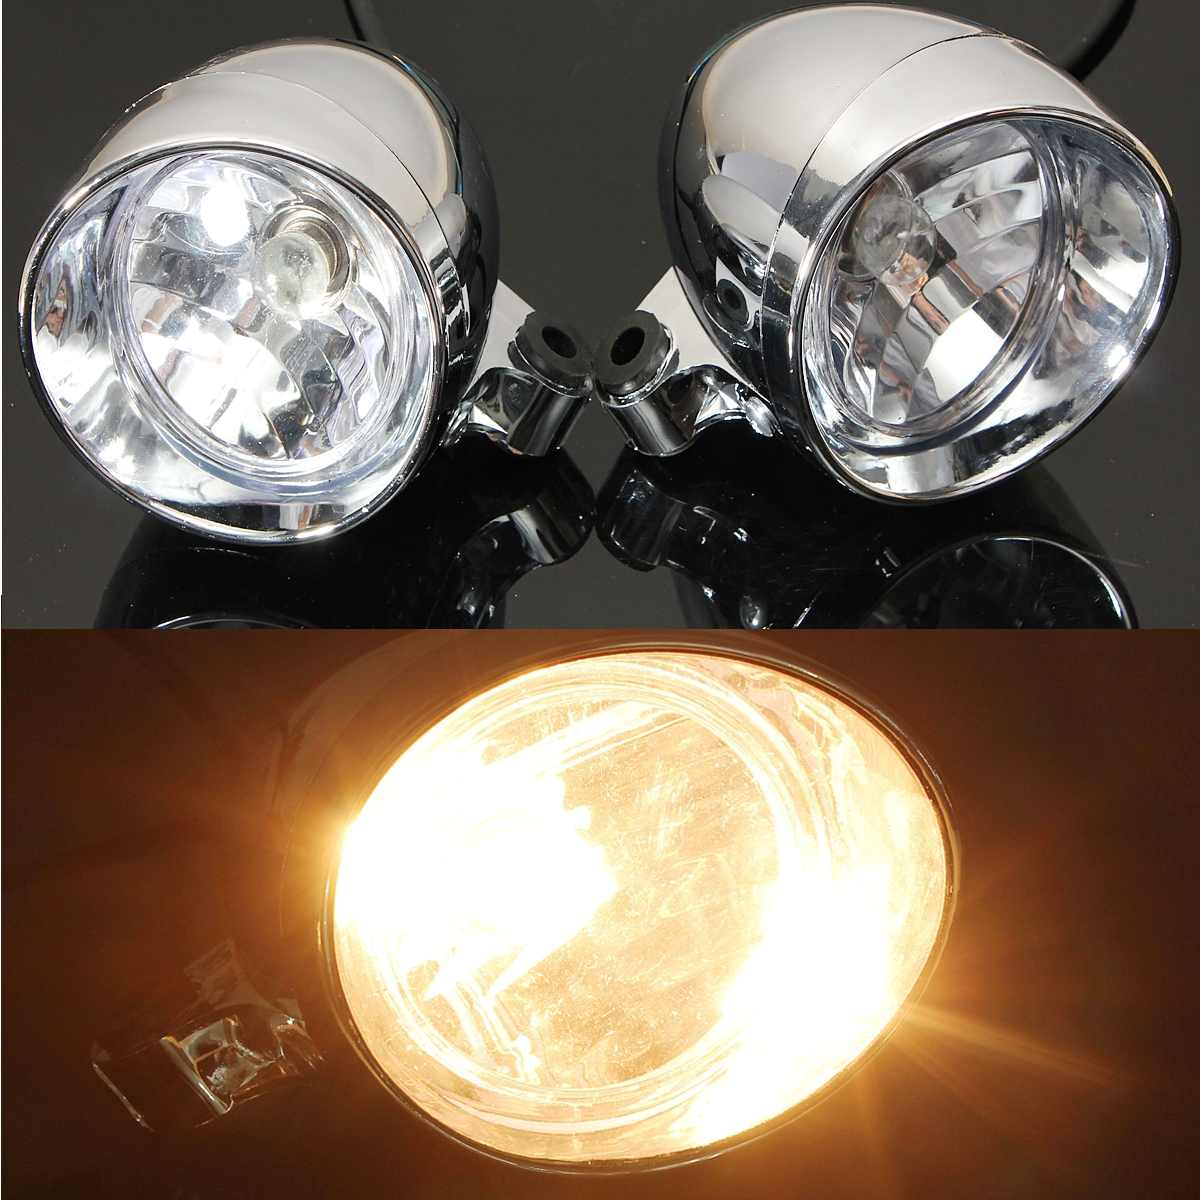 2Pcs Universal DC 12V 4 Motorcycle Bullet Headlight Spot Fog Lamp Chrome Lamp Amber Light For Harley For Honda For Yamaha